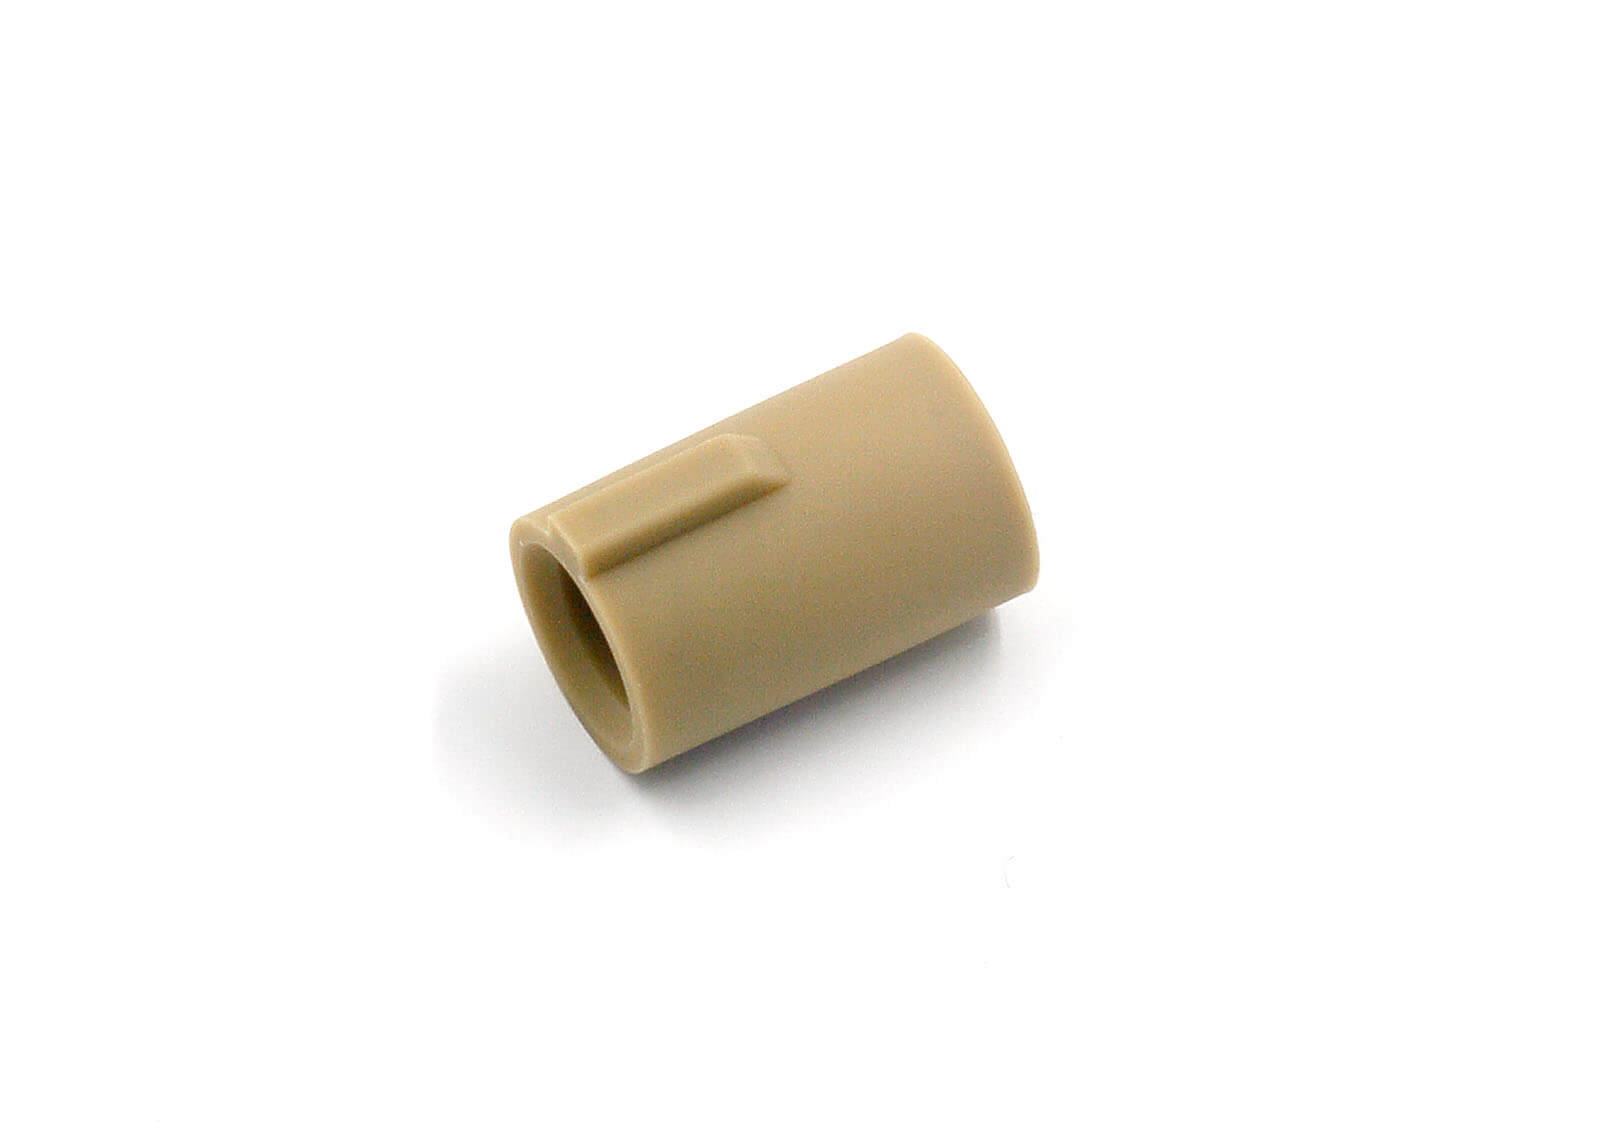 Accurate Hop Up Bucking (1st Class Aircraft Rubber, Tan) - Modify Airsoft parts